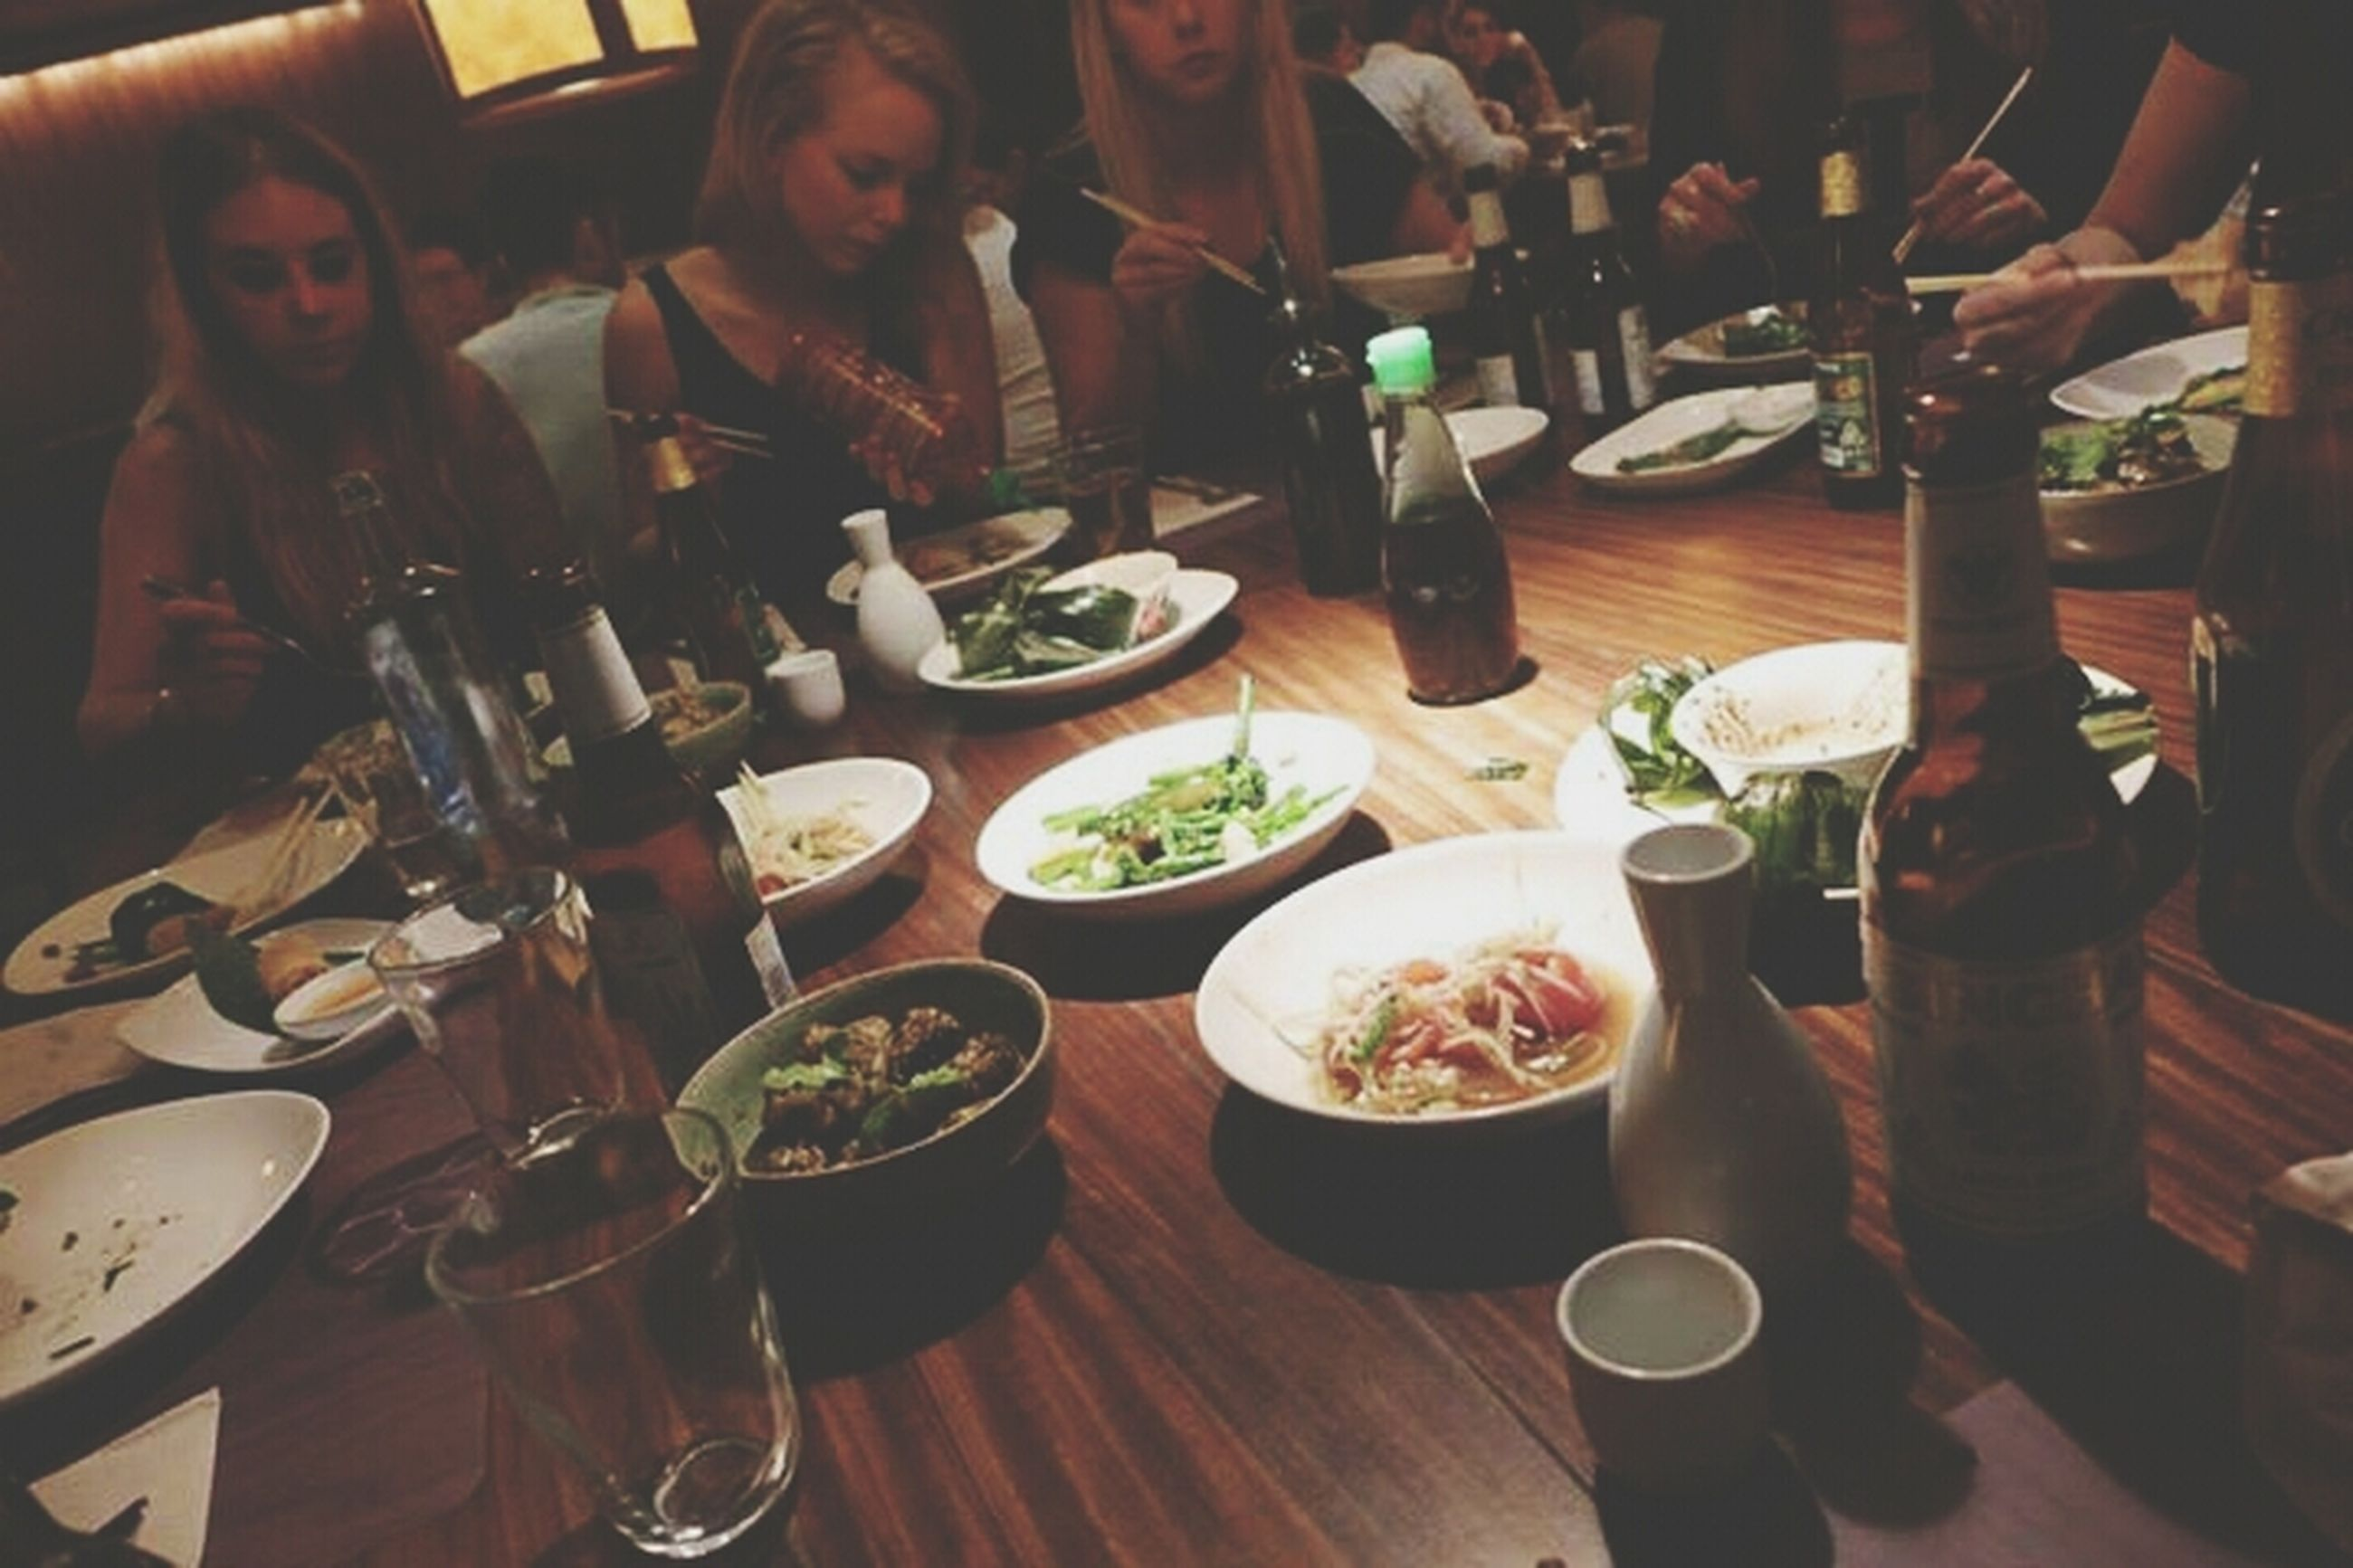 indoors, food and drink, table, freshness, food, drink, plate, restaurant, drinking glass, healthy eating, refreshment, ready-to-eat, meal, fork, bowl, still life, wineglass, dining table